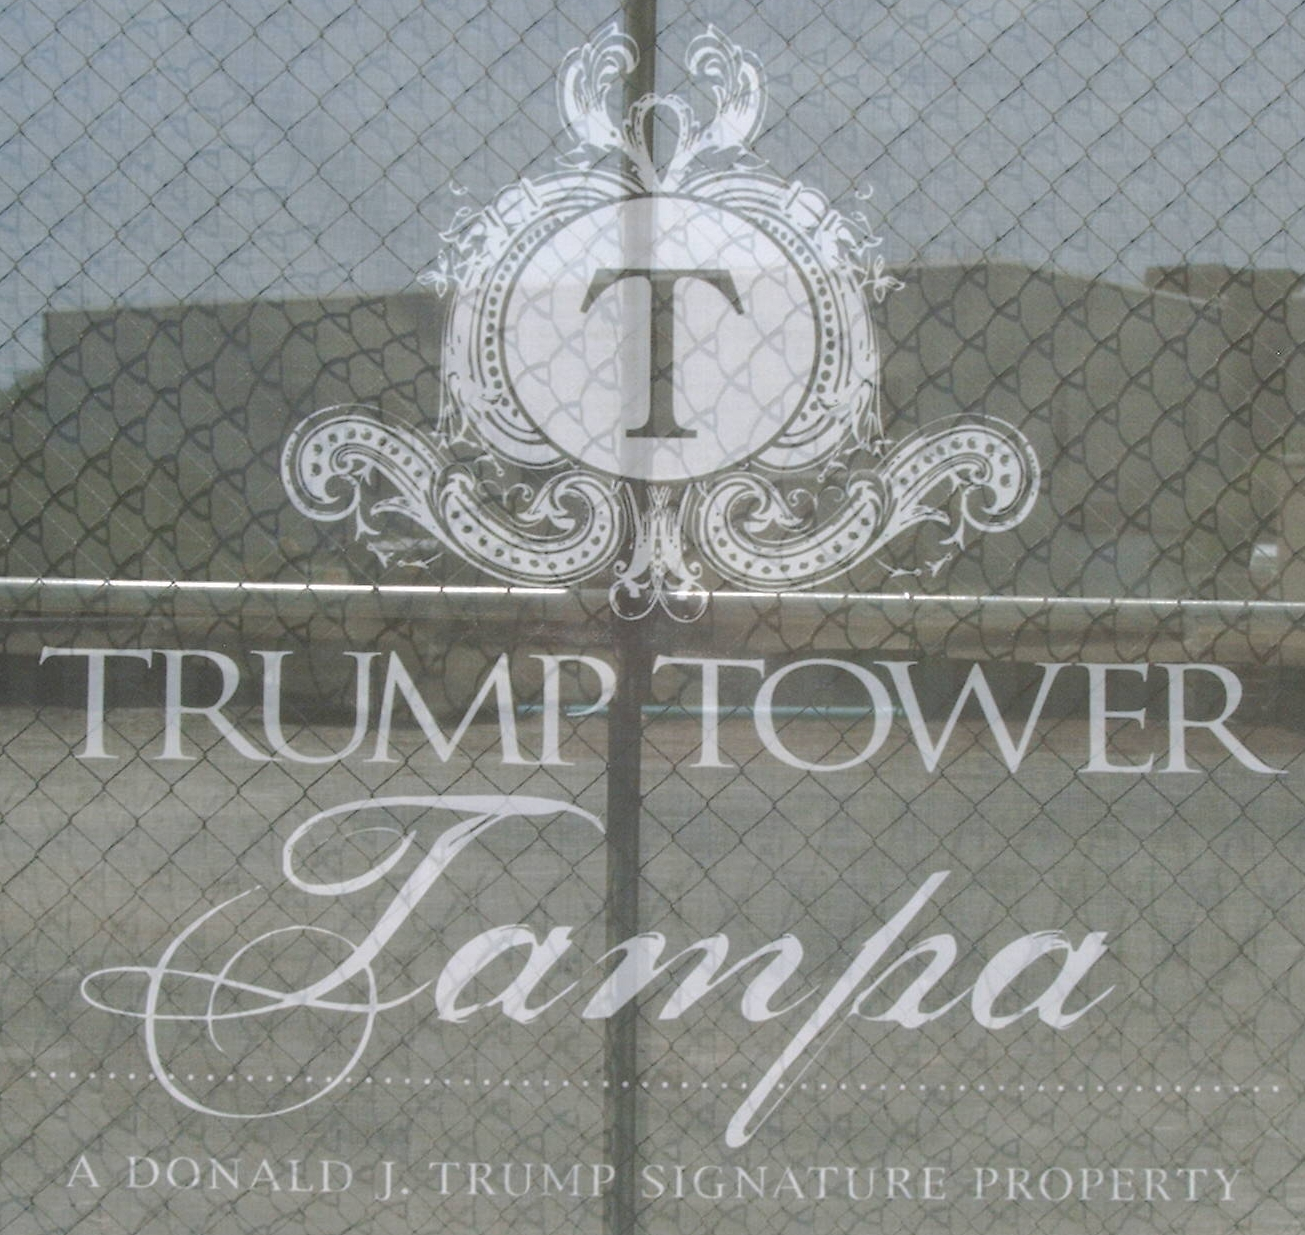 Trump Tower Tampa Wikipedia